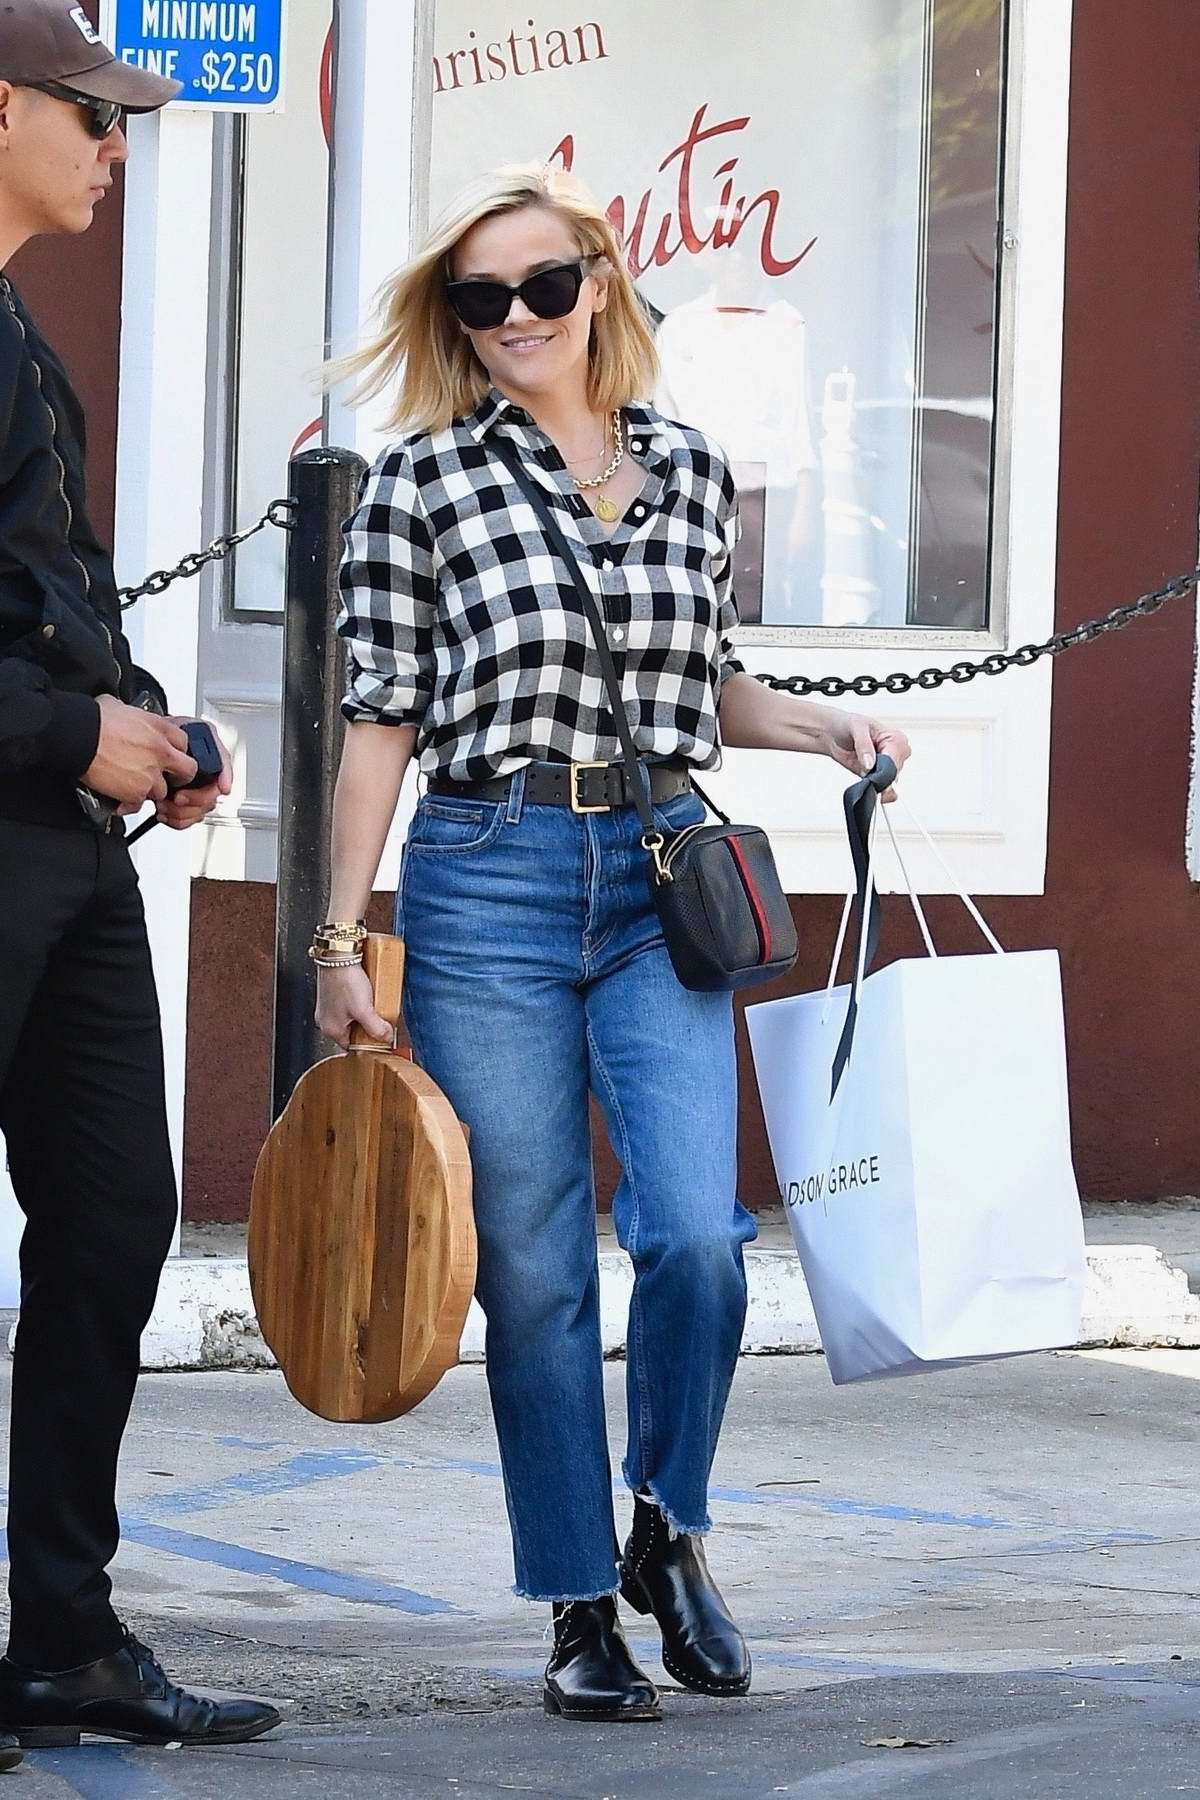 Reese Witherspoon wears a plaid shirt and jeans as steps out for some Christmas shopping in Brentwood, California